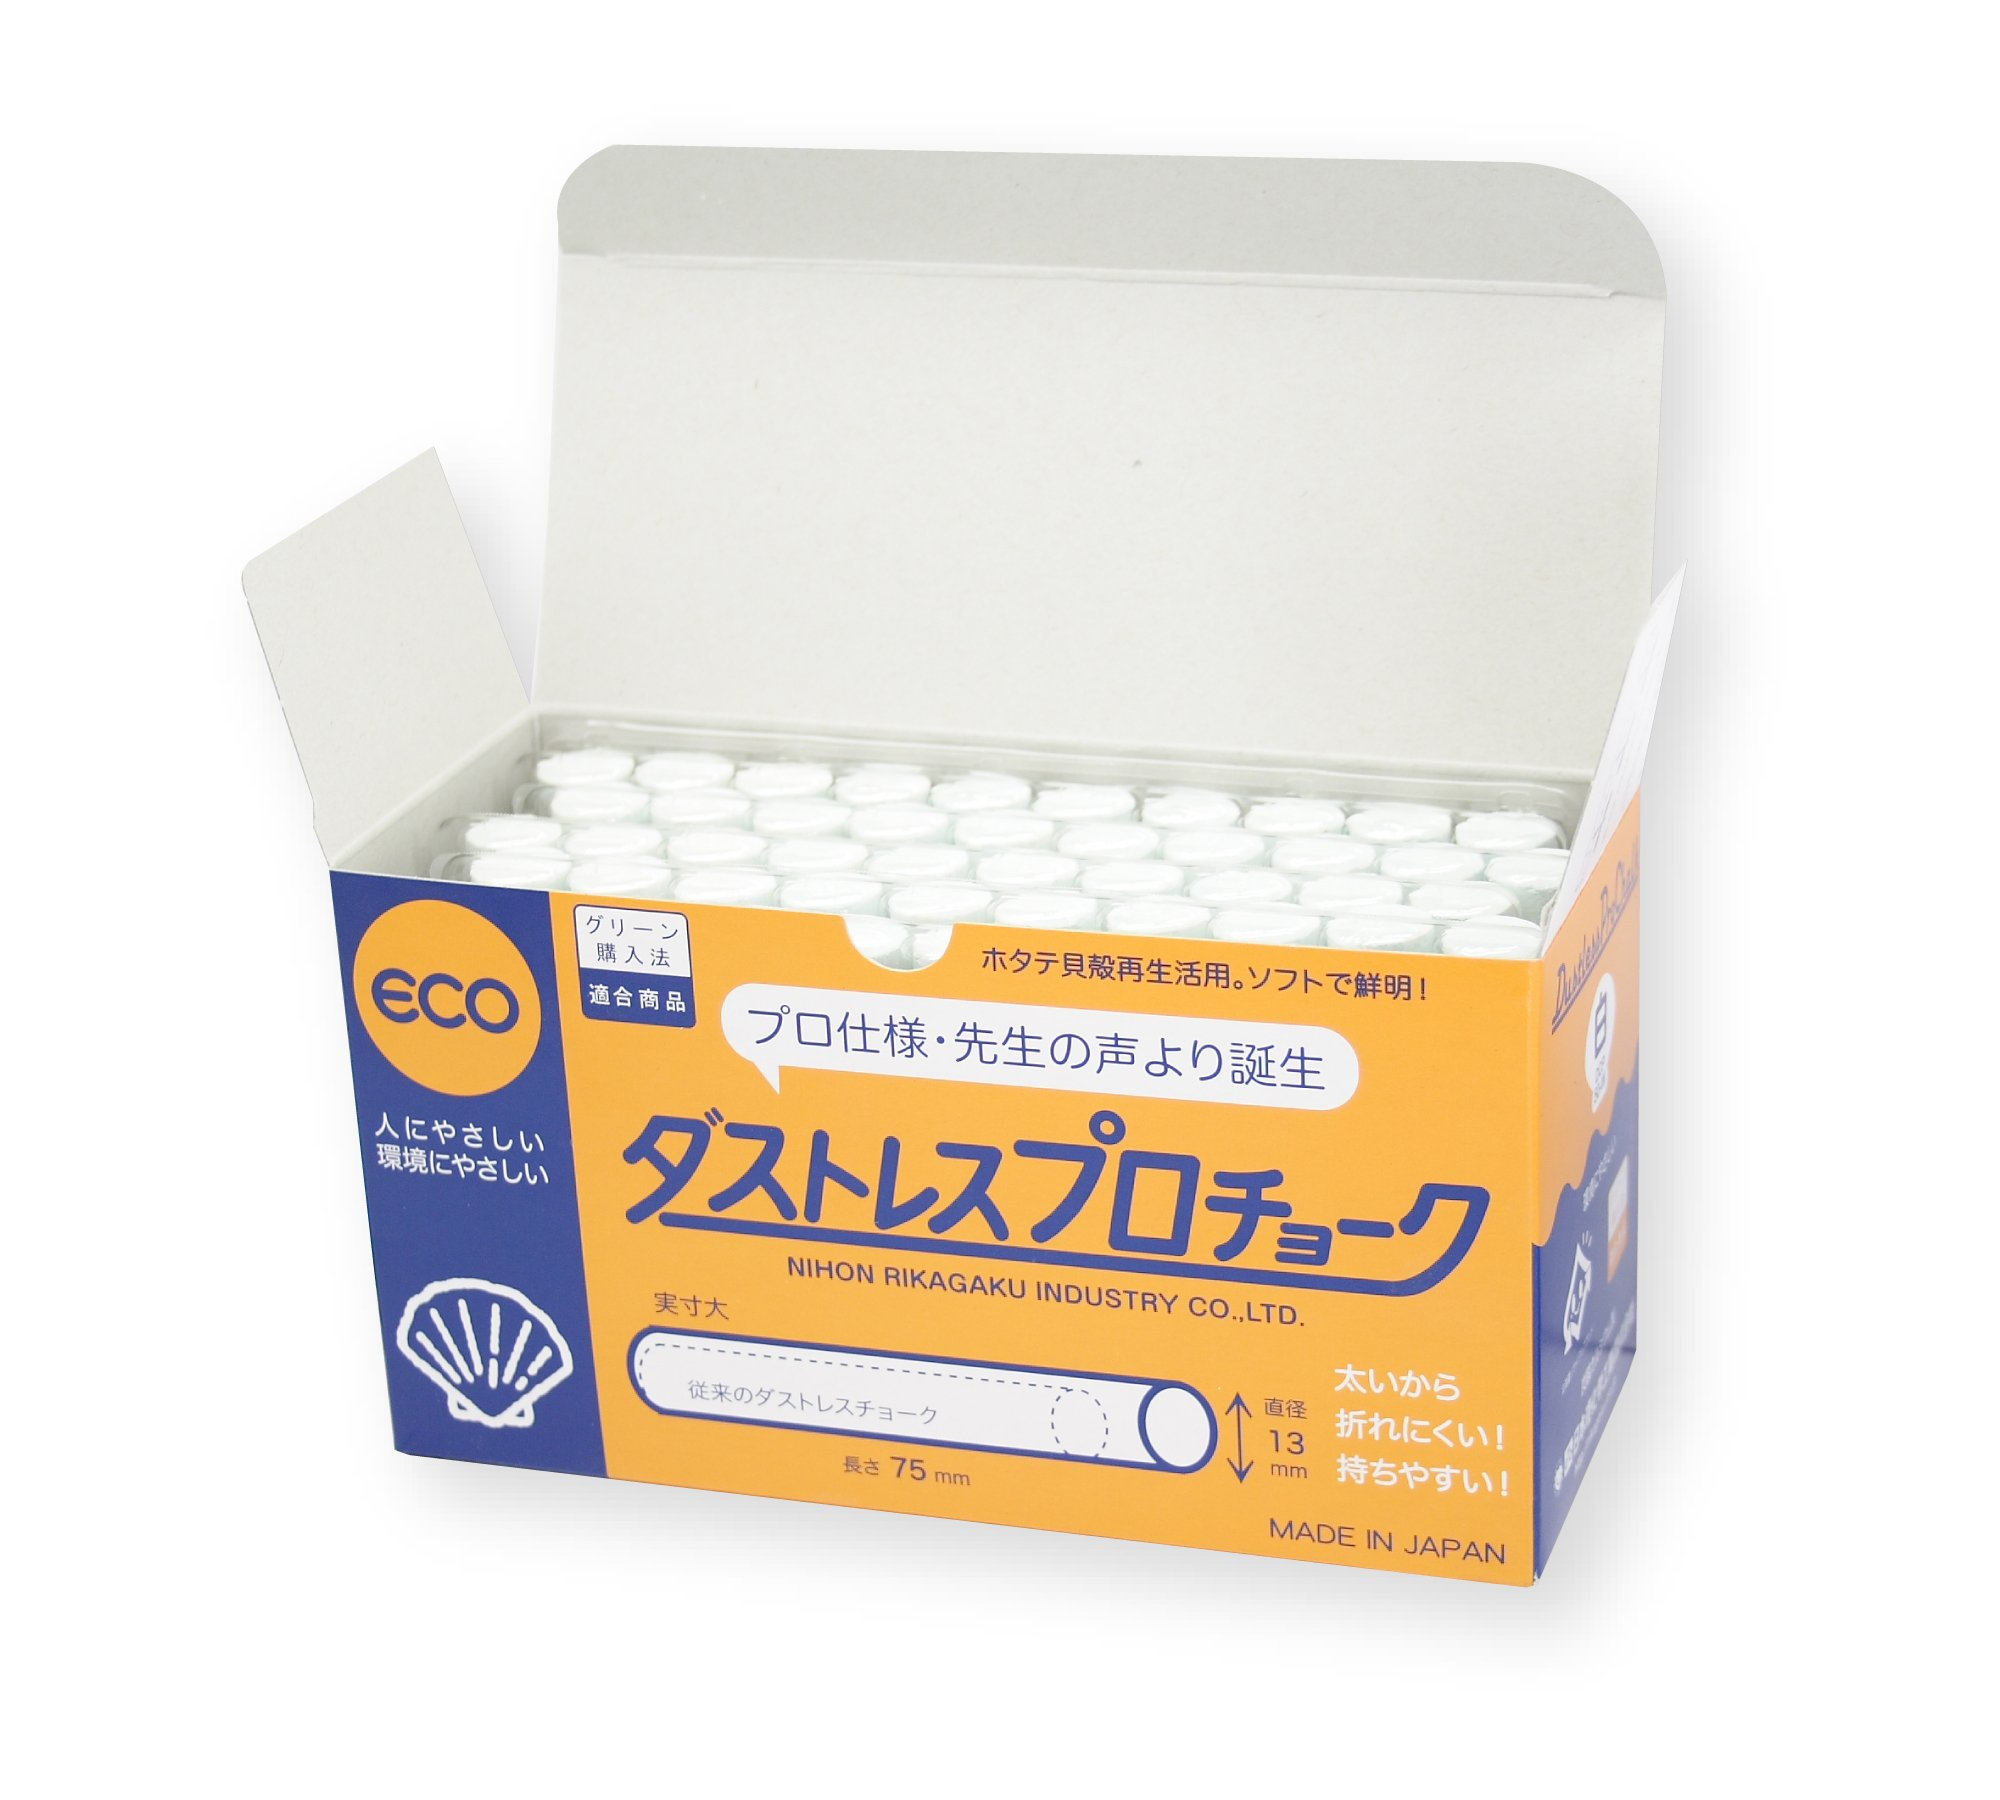 Dustless Professional Chalk (White) - produced by Japan's top chalk manufacturer